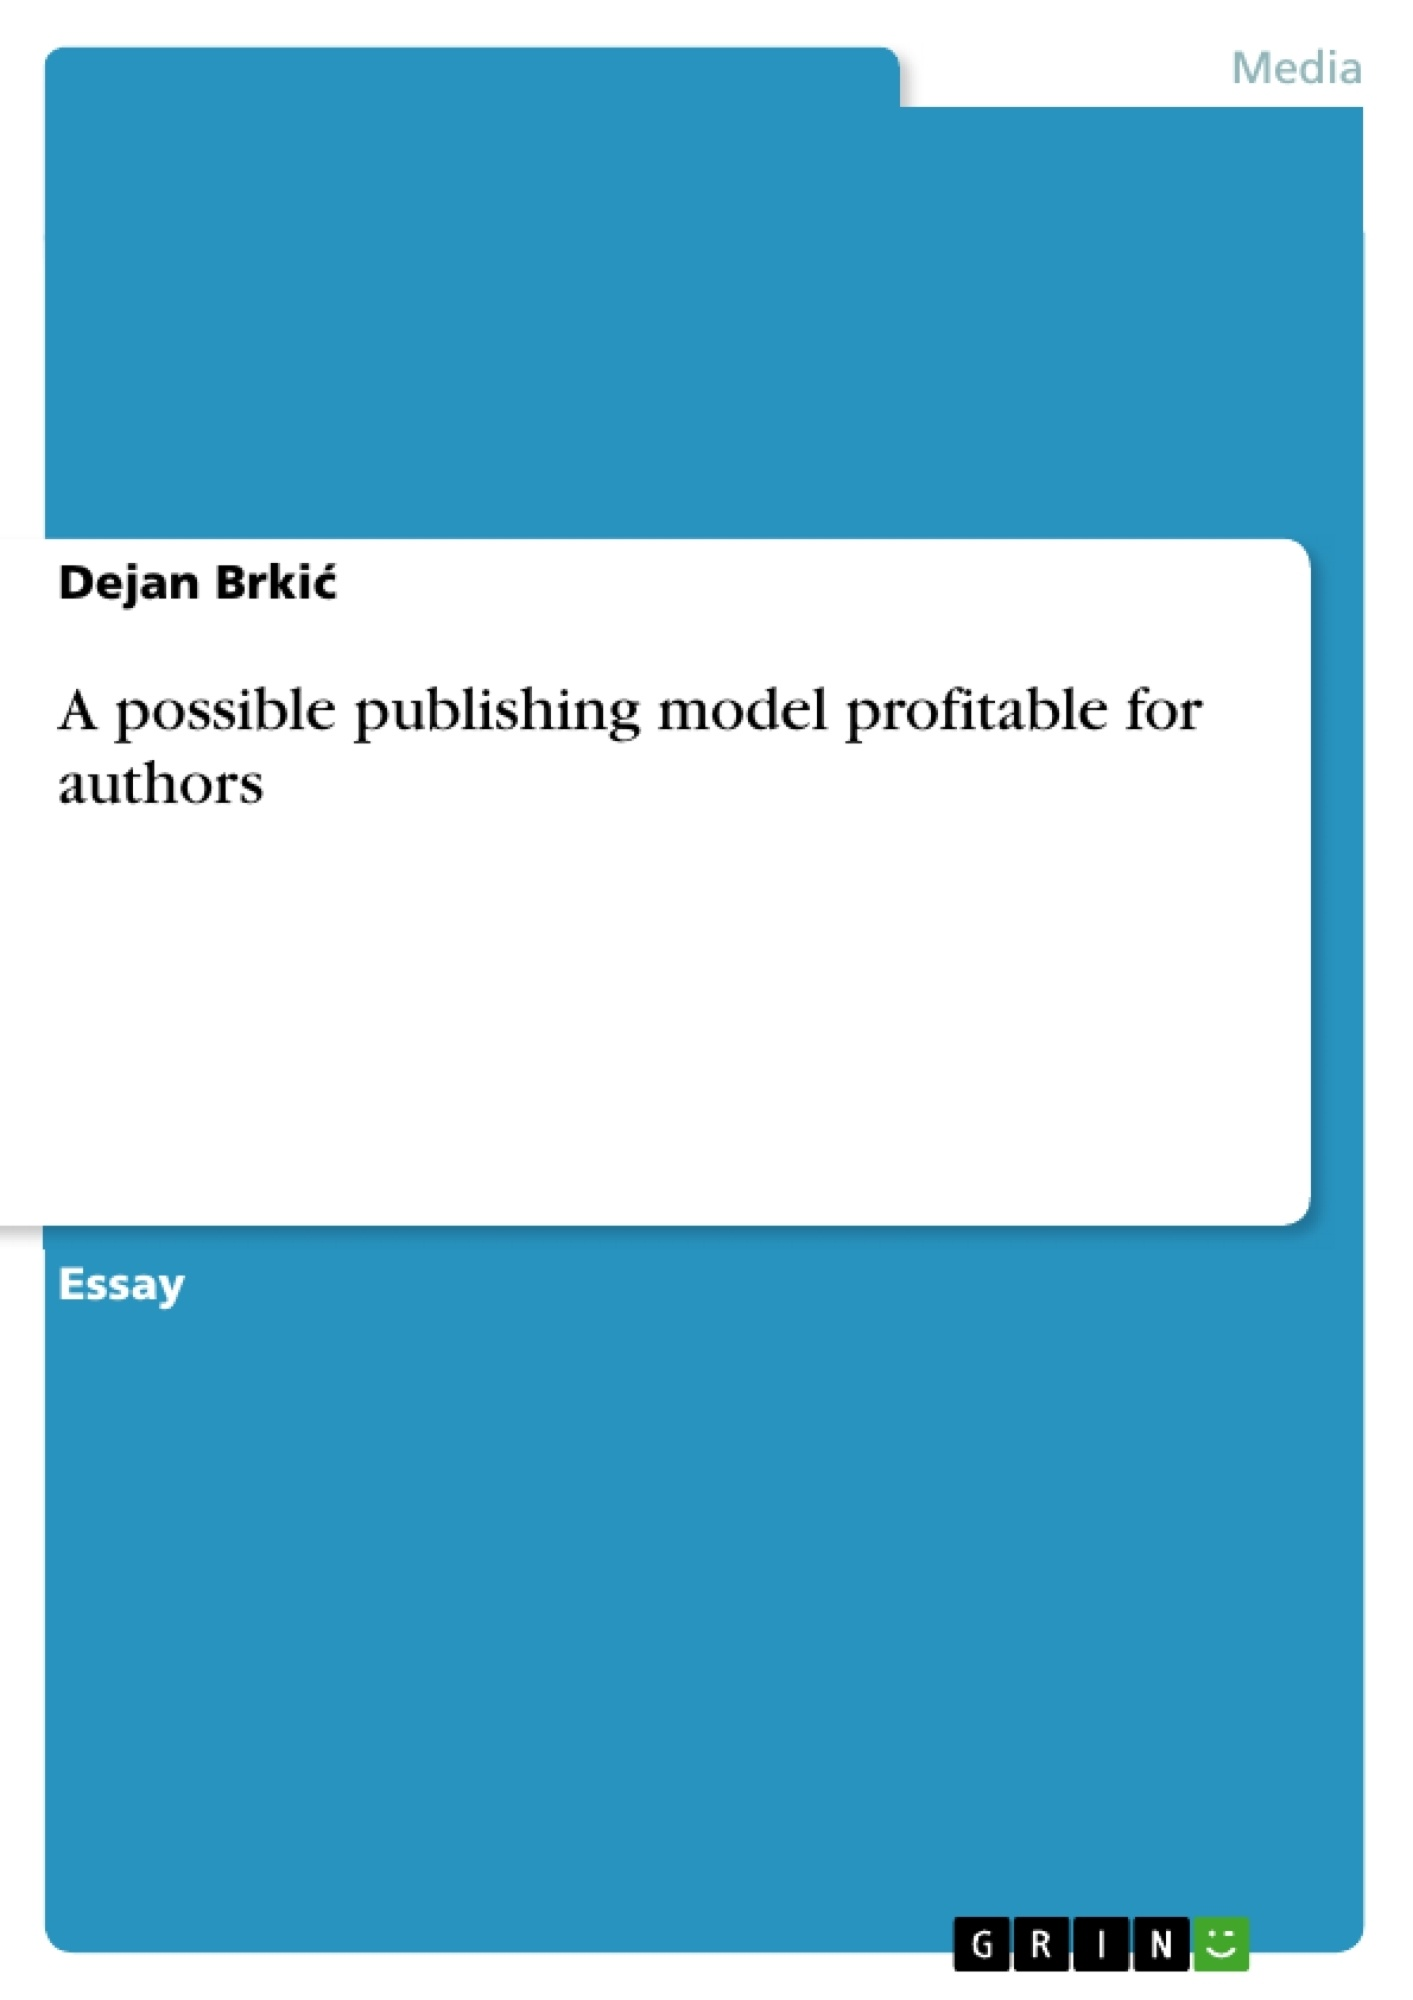 Title: A possible publishing model profitable for authors